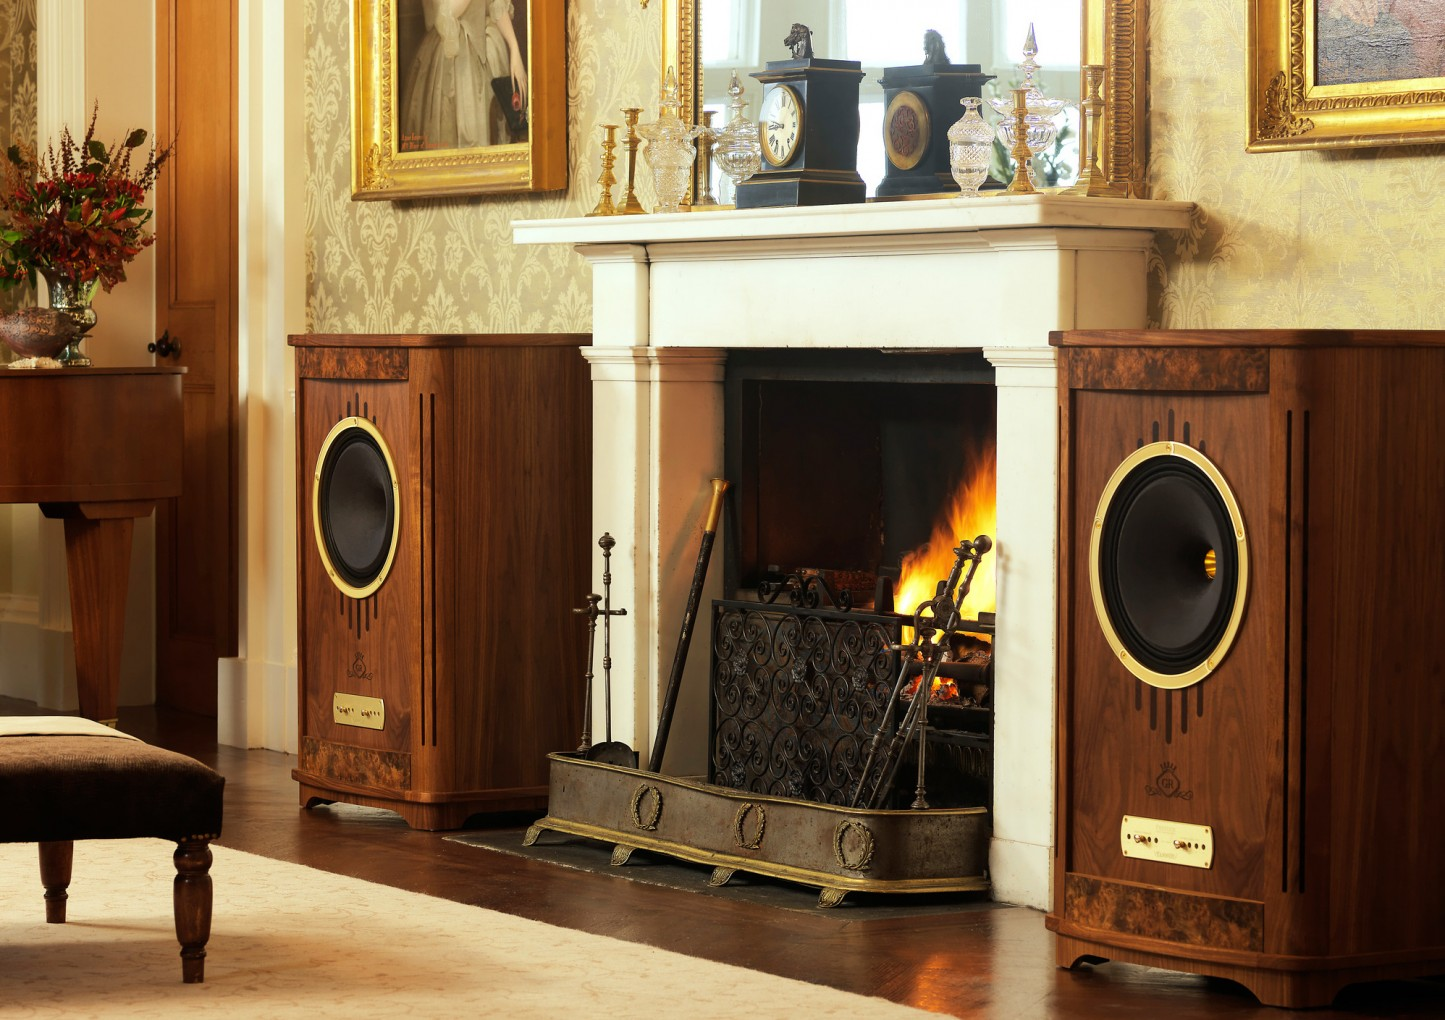 Tannoy-Canterburry-Image-1